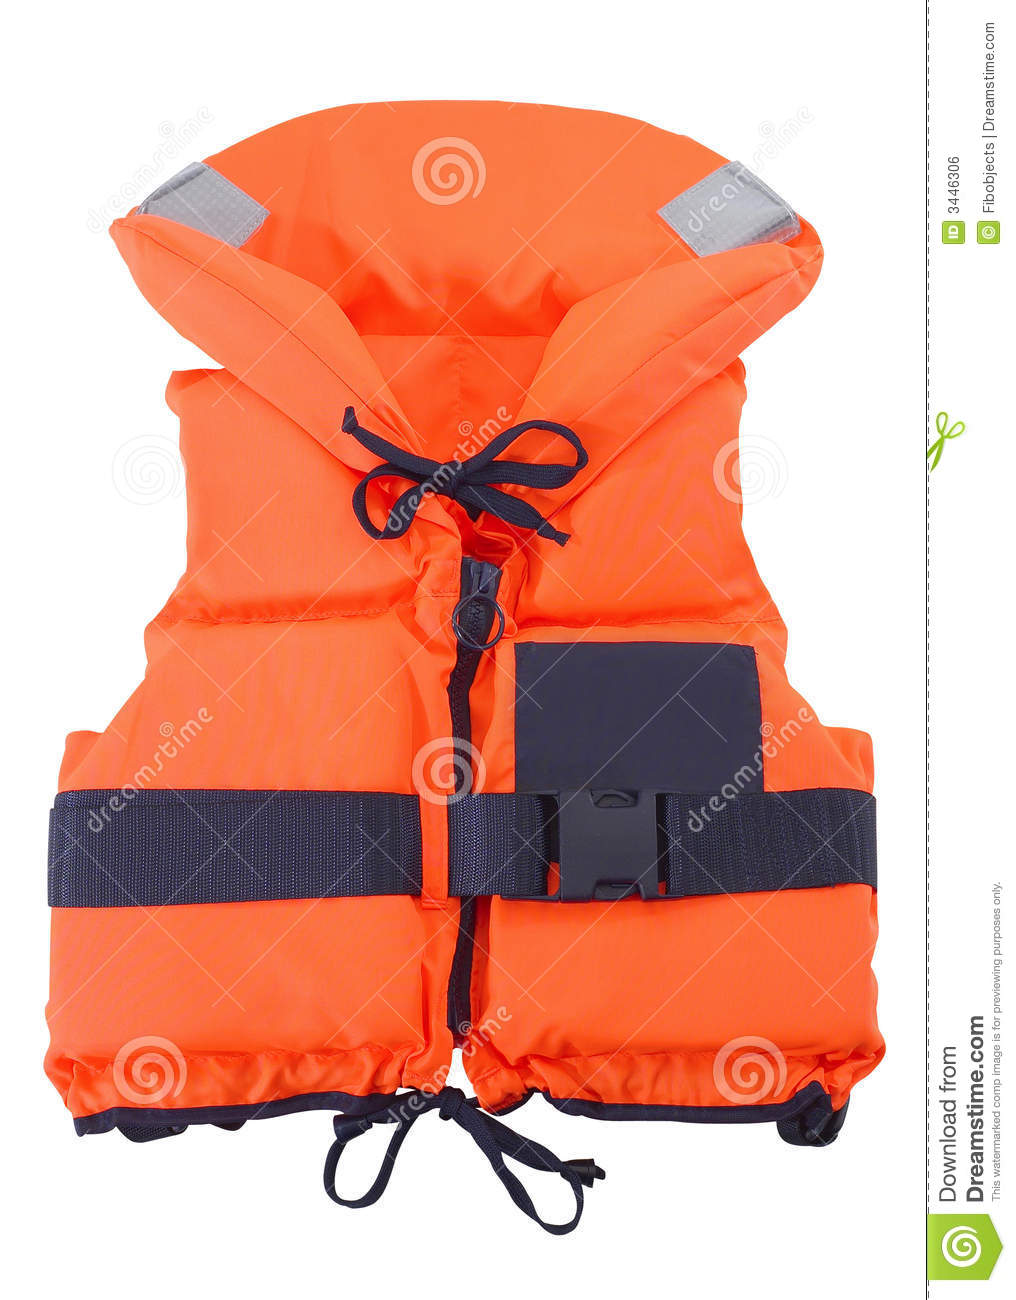 Orange Life Jacket Royalty Free Stock Image Image 3446306